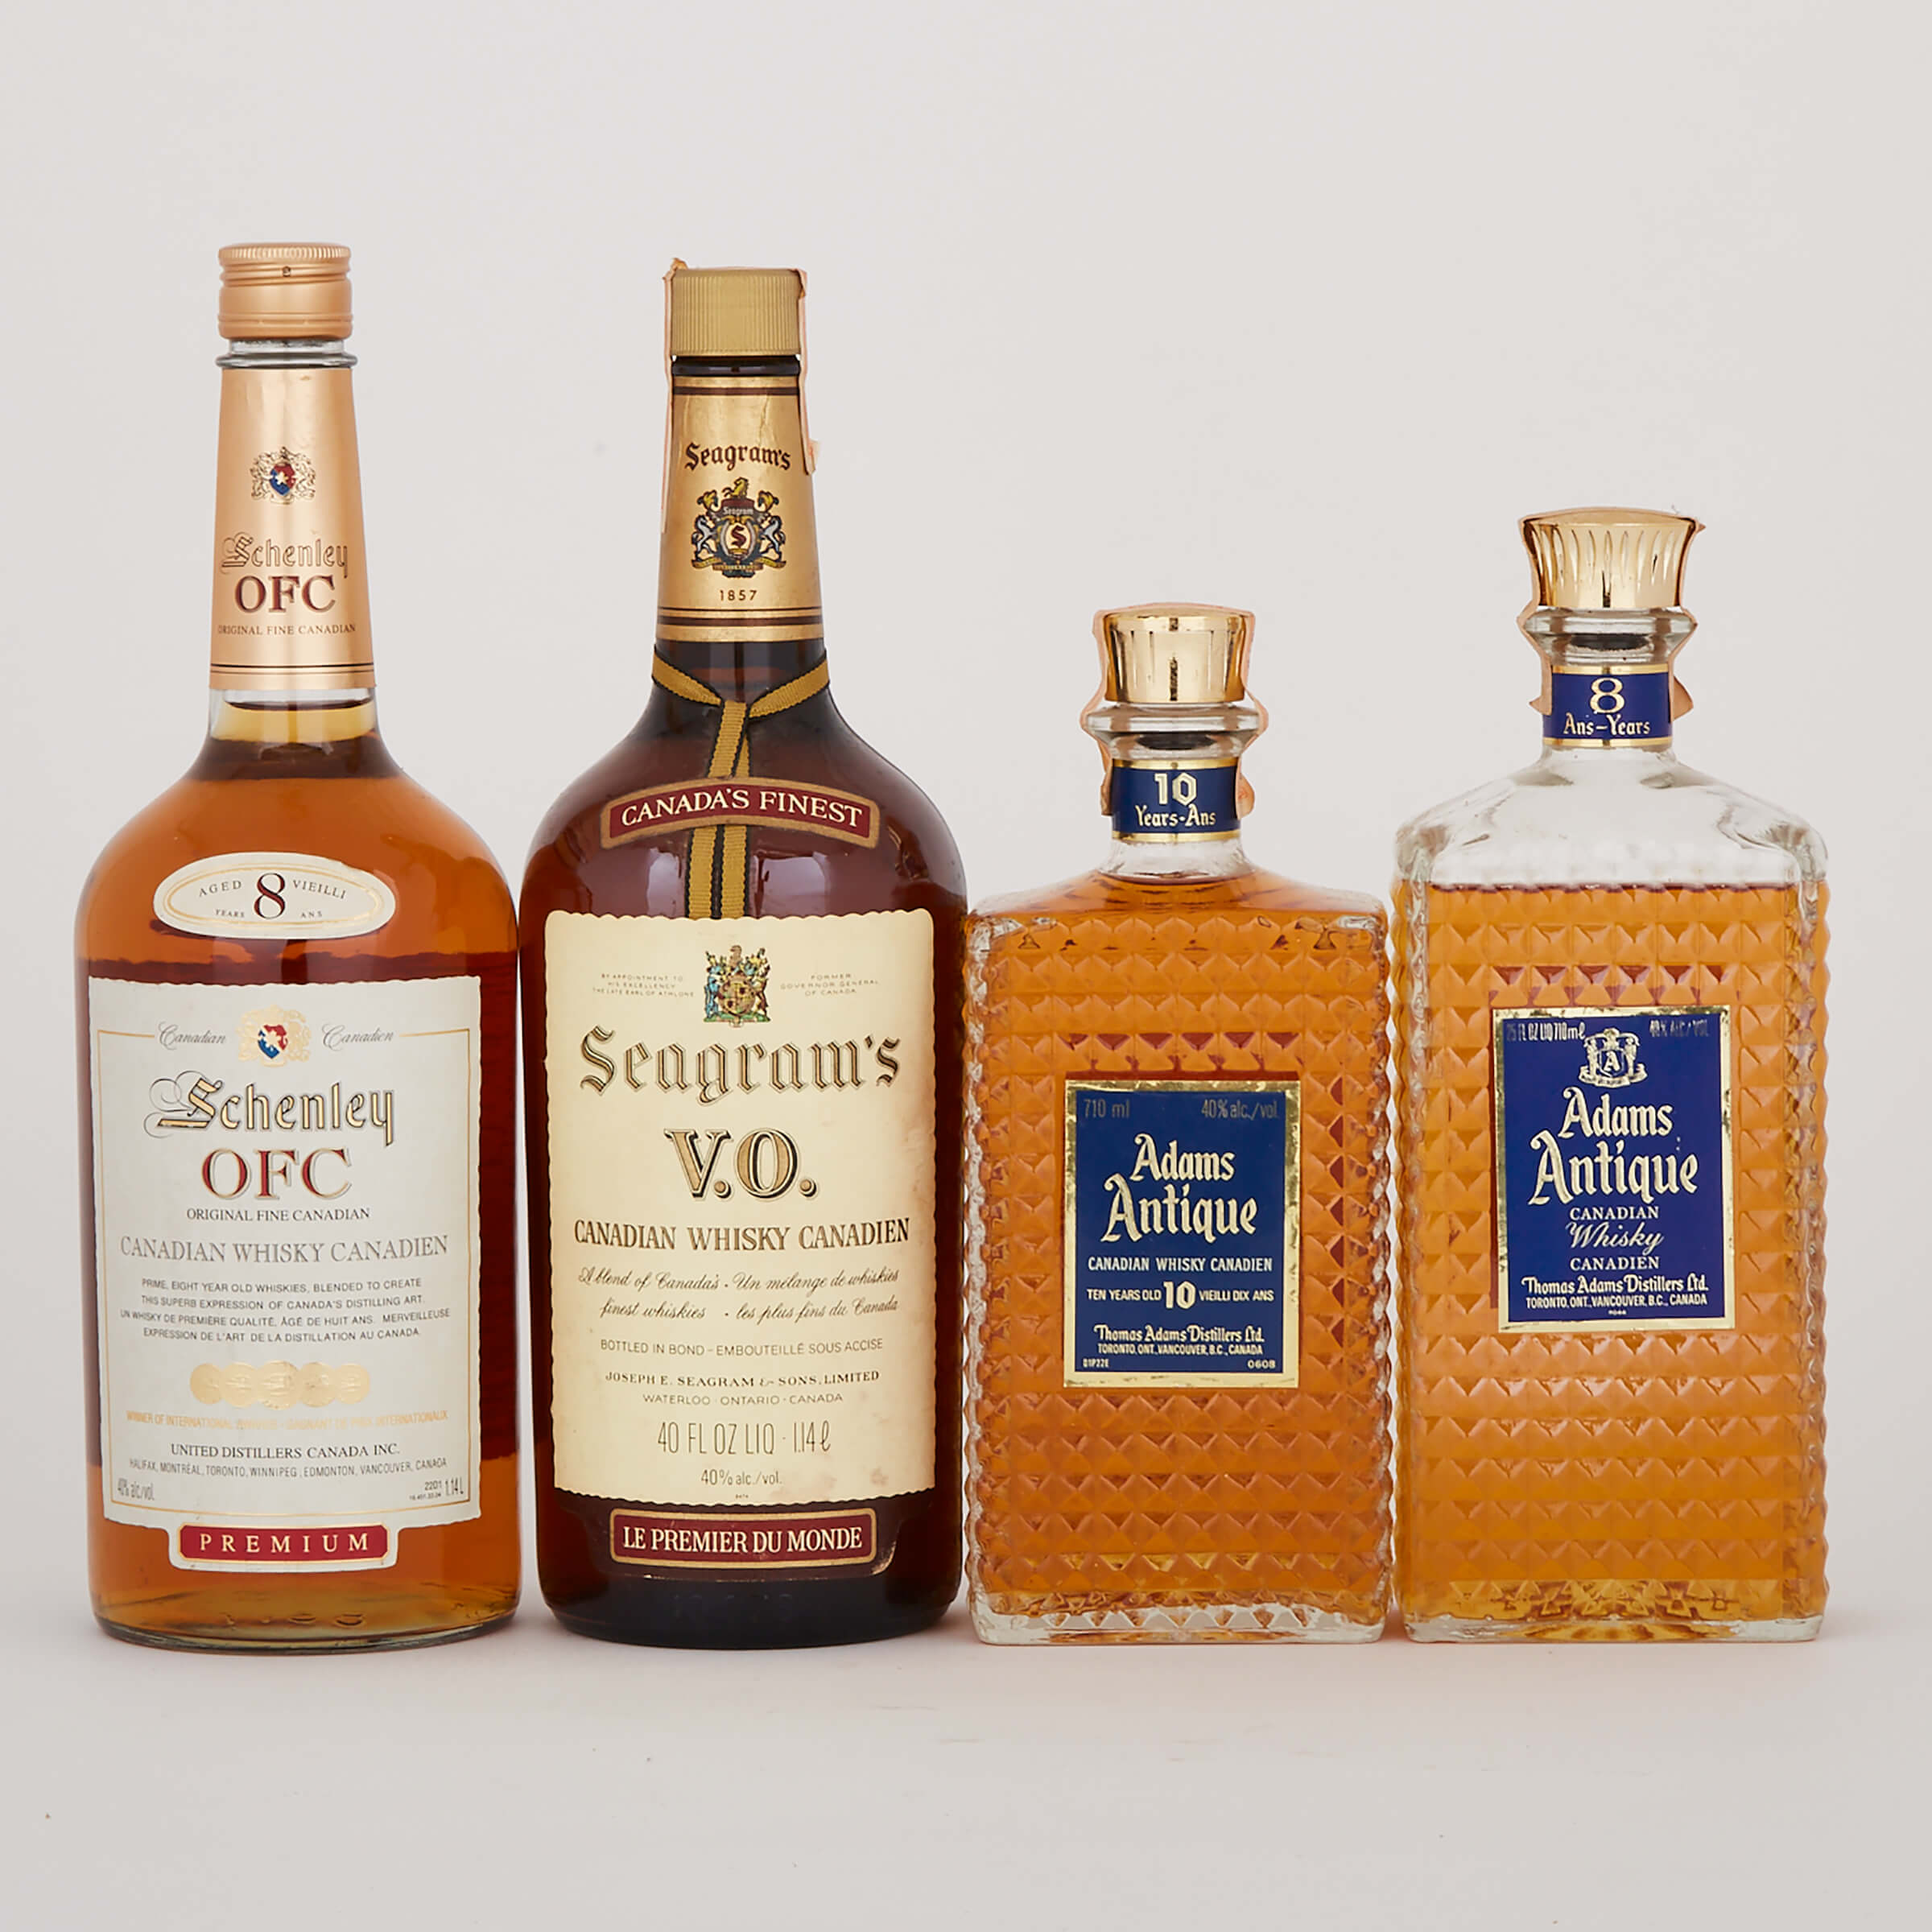 ADAMS ANTIQUE CANADIAN WHISKY 10 YEARS (ONE 710 ML) ADAMS ANTIQUE CANADIAN WHISKY 8 YEARS (ONE 710 ML) SCHENLEY CANADIAN WHISKY OFC 8 YEARS (ONE 1.14 L) SEAGRAM'S V.O BLENDED CANADIAN WHISKY 6 YEARS (ONE 40 OZ.)